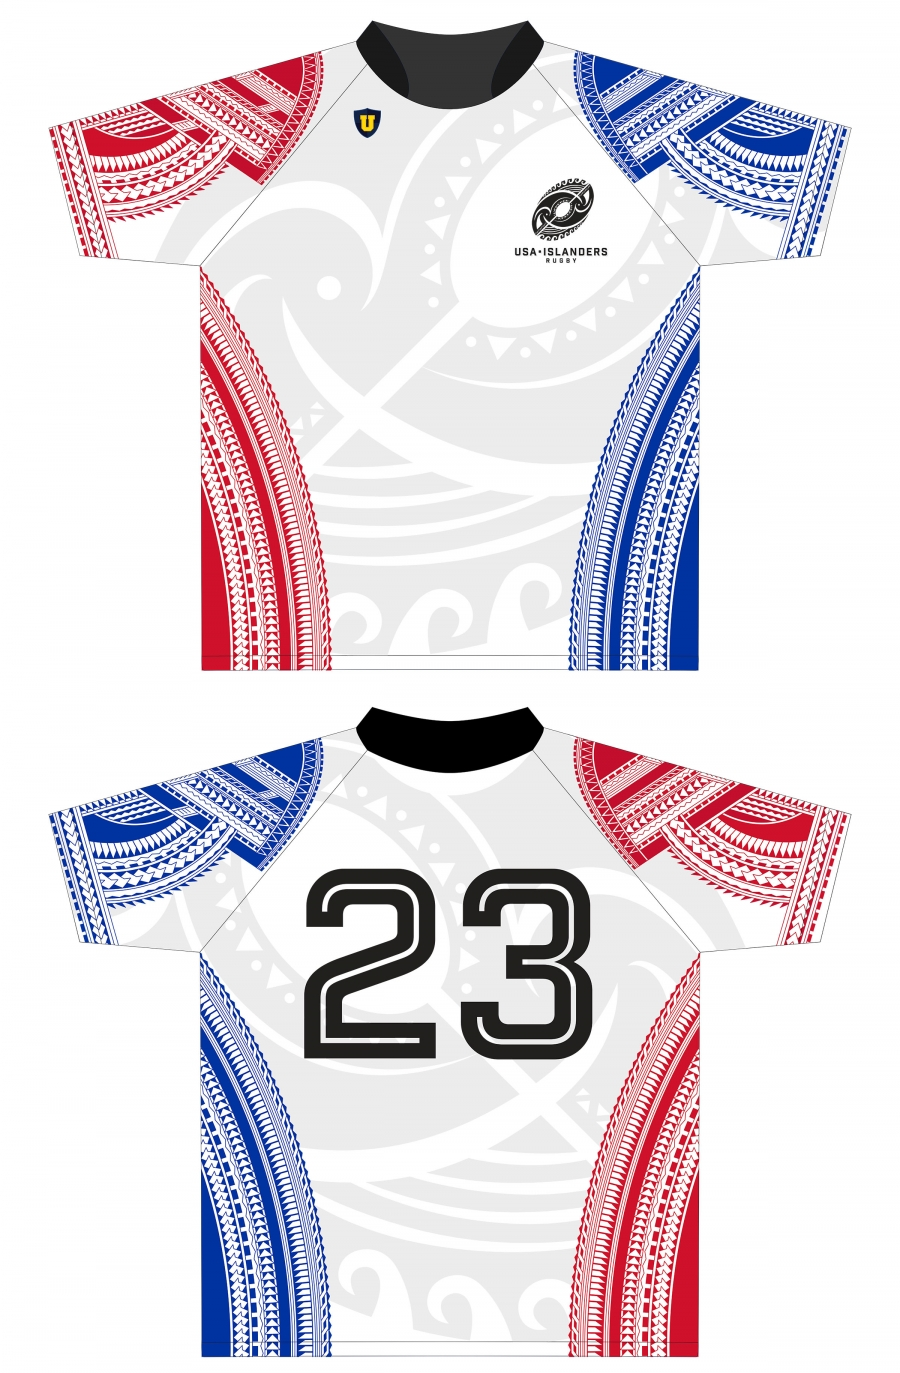 USA Islanders Custom Rugby Jerseys with Red, White and Blue coloring